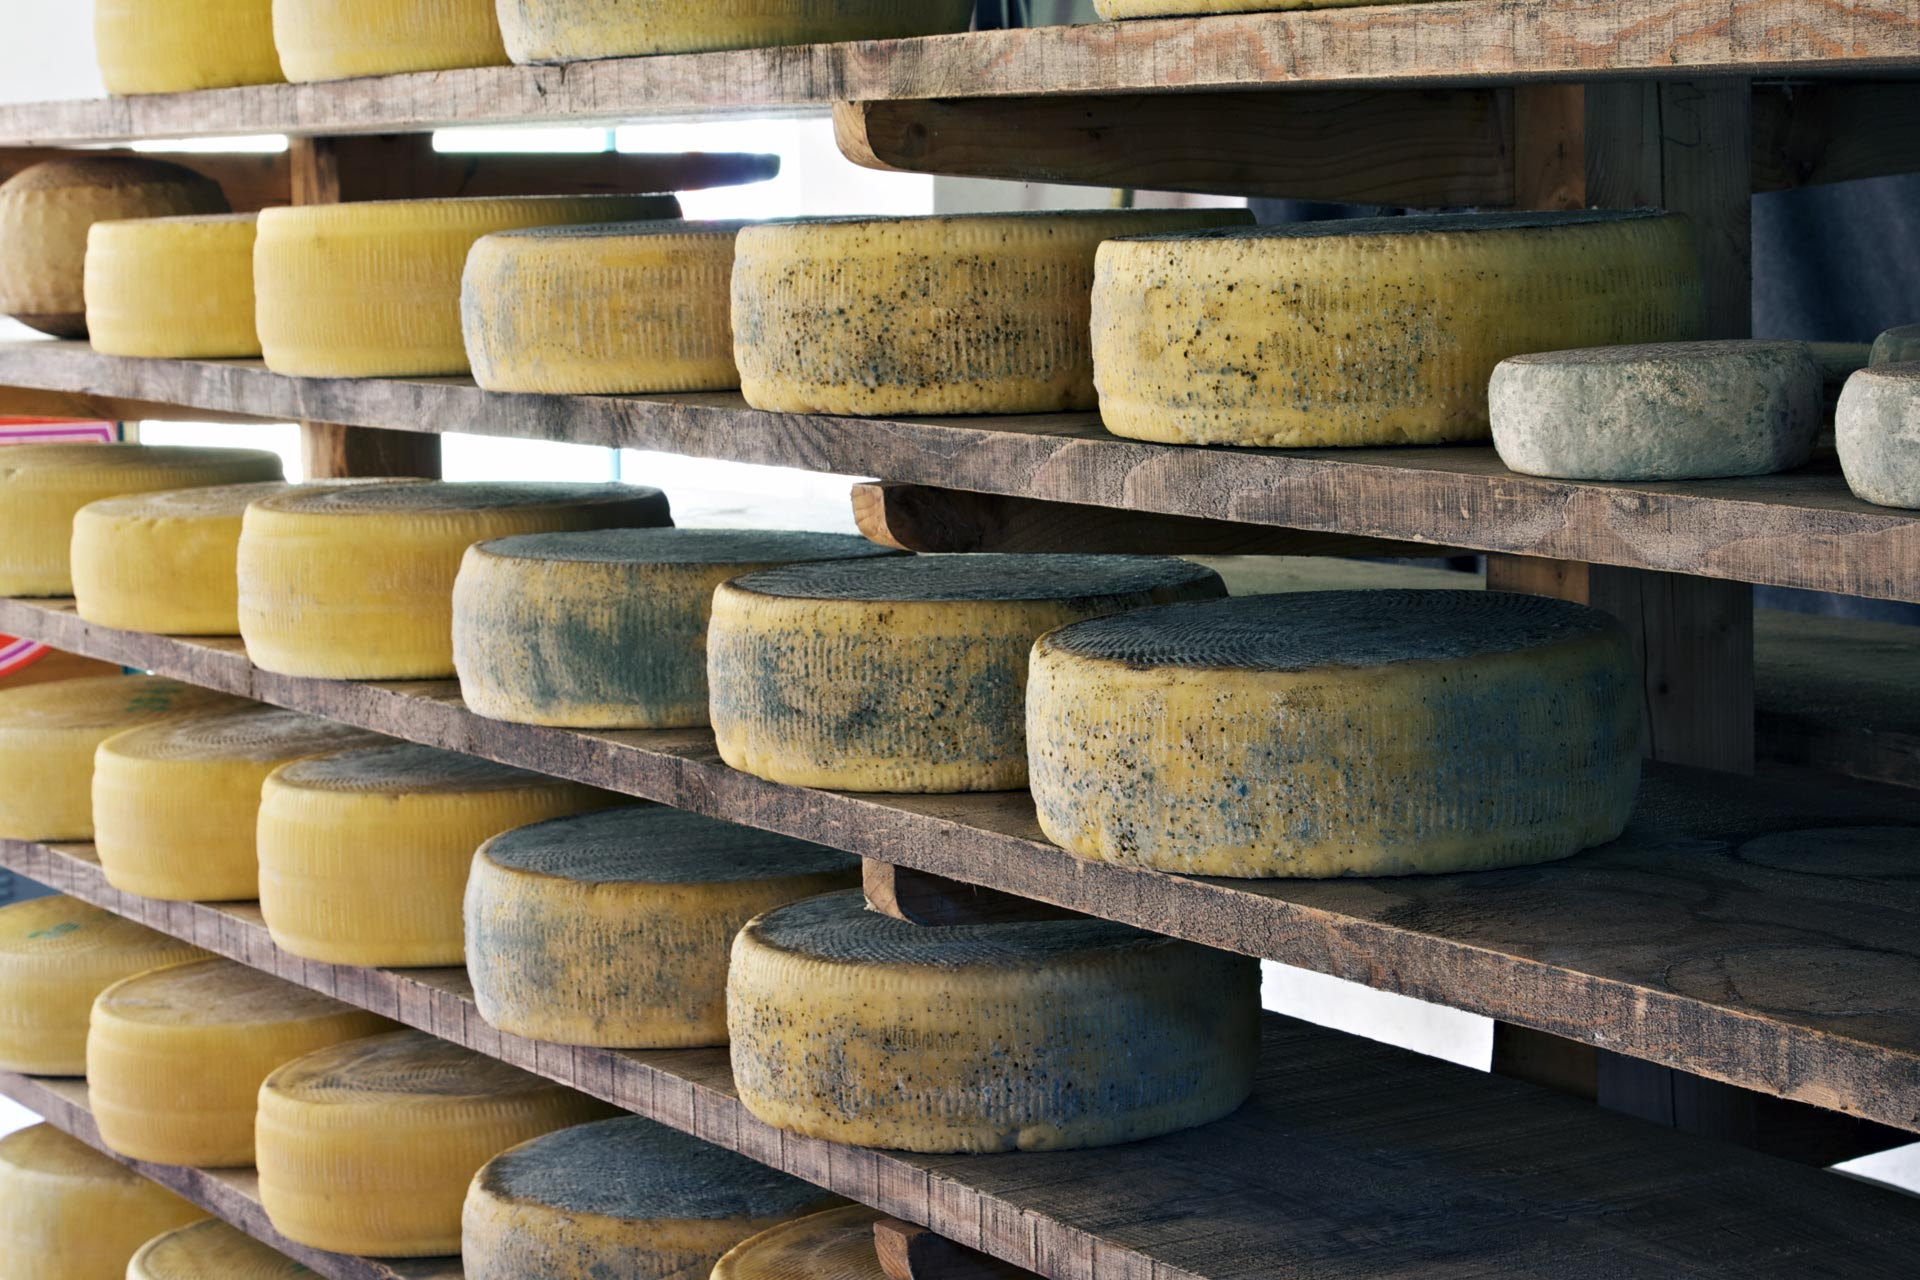 wheels of cheese aging on shelves